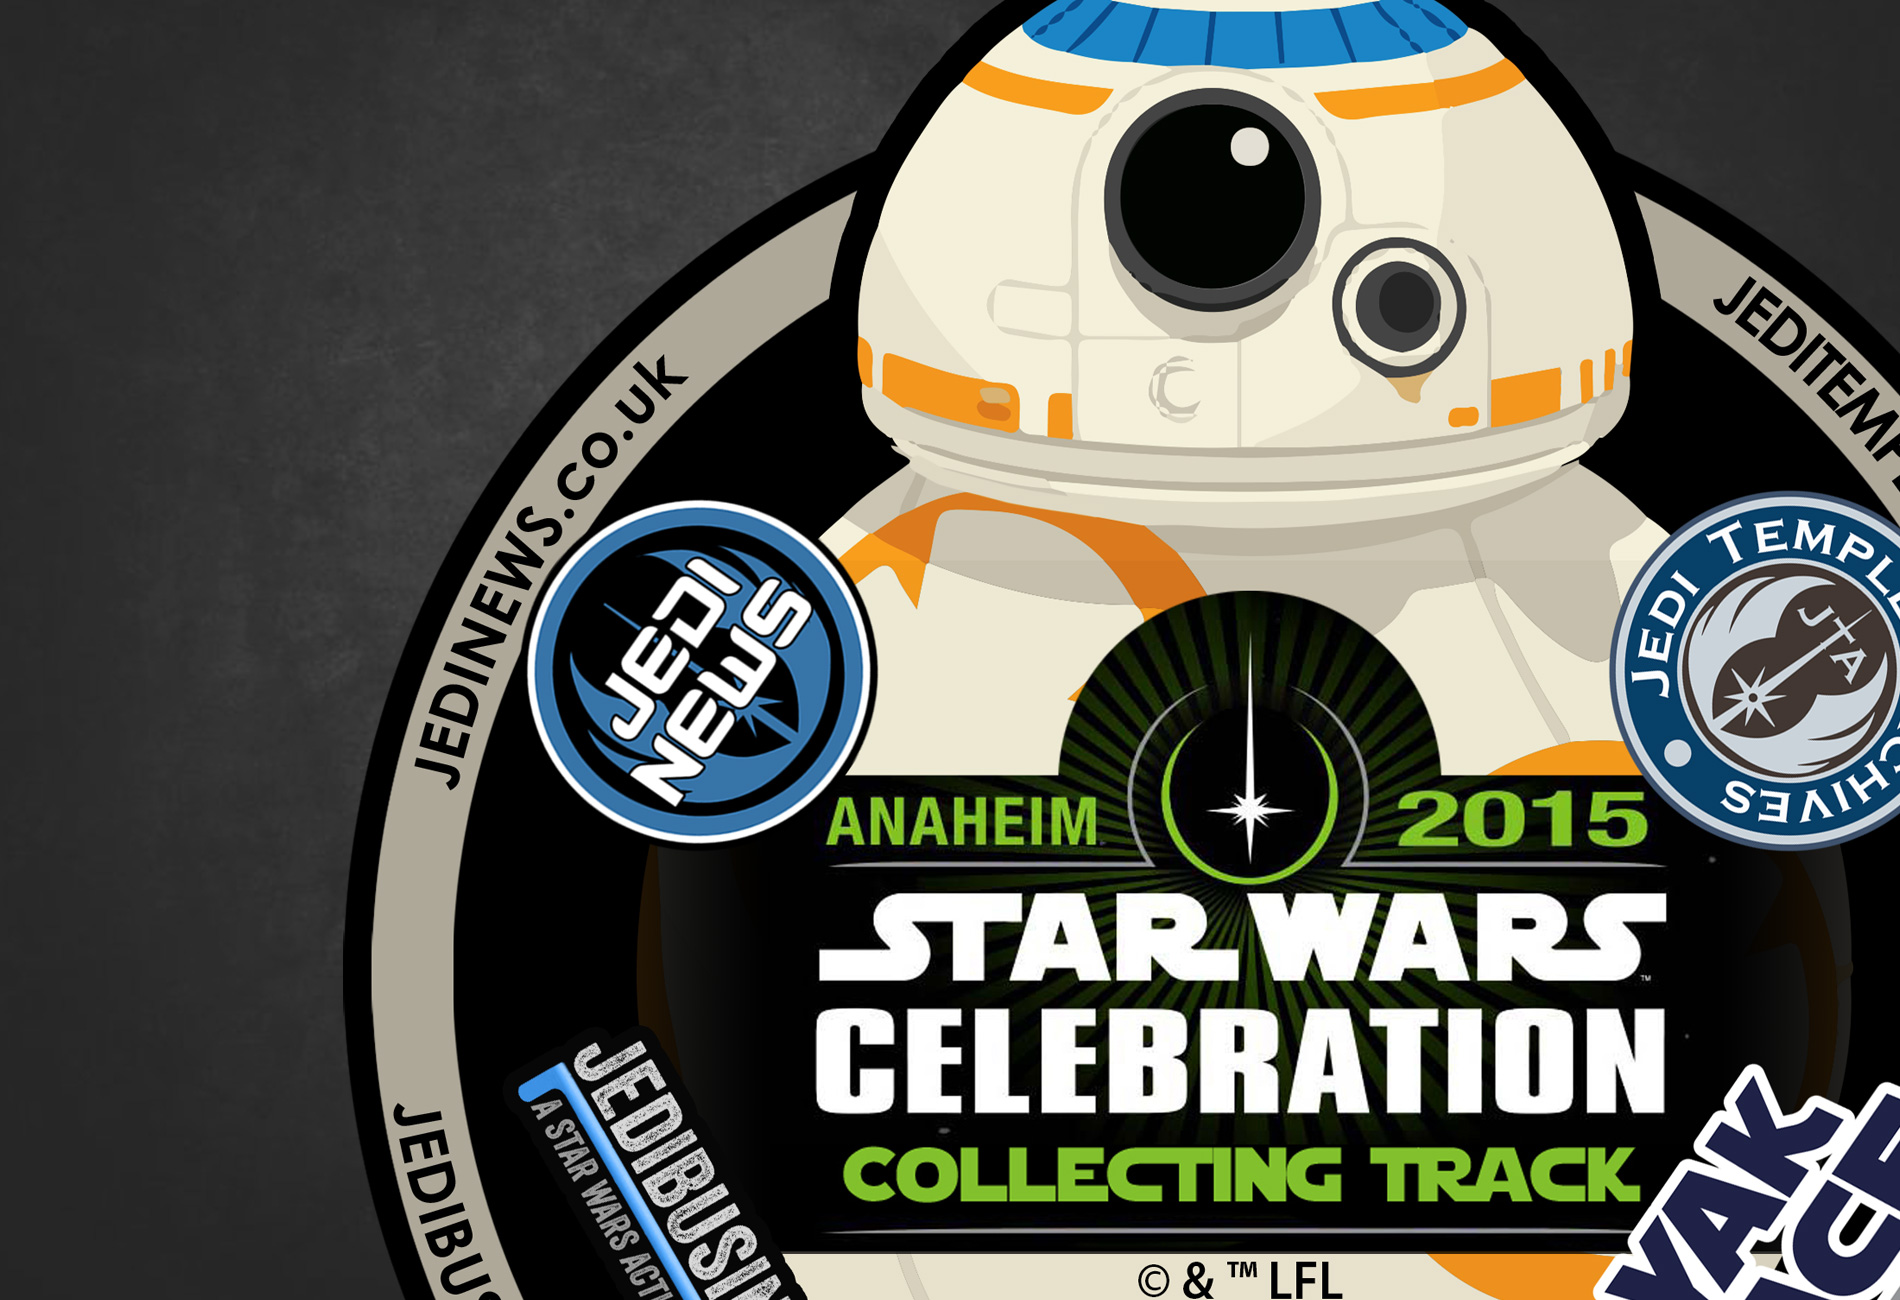 Star Wars Celebration Patch